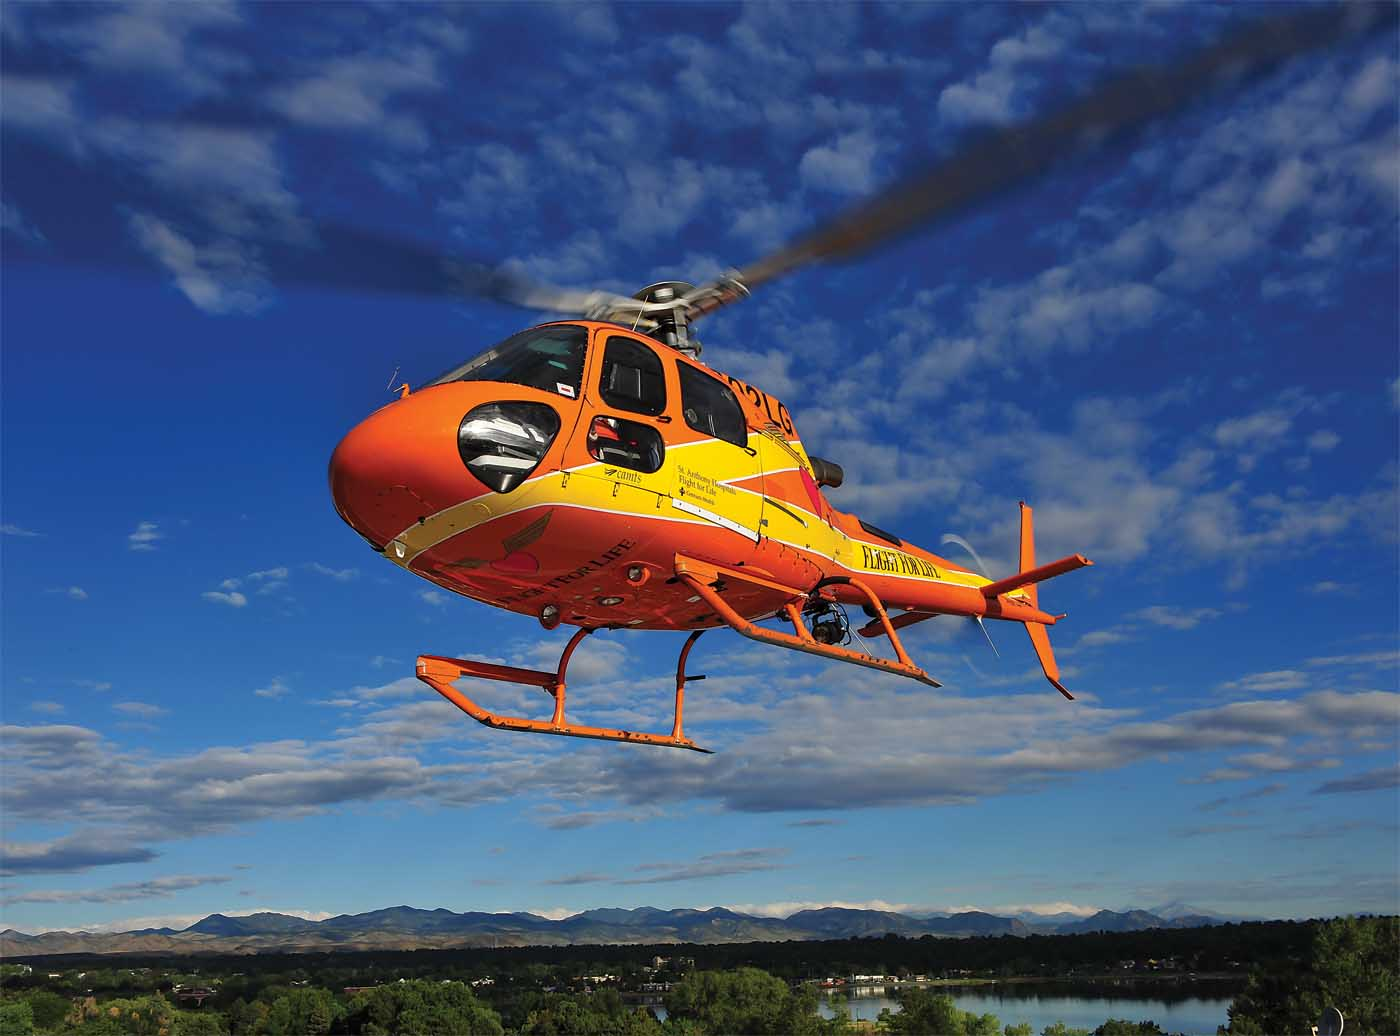 A high-profile fatal accident involving a Flight For Life helicopter in July 2015 called attention to the civil helicopter industry's shortcomings in addressing crash safety. Now, the FAA is feeling pressure to act. Mike Reyno Photo